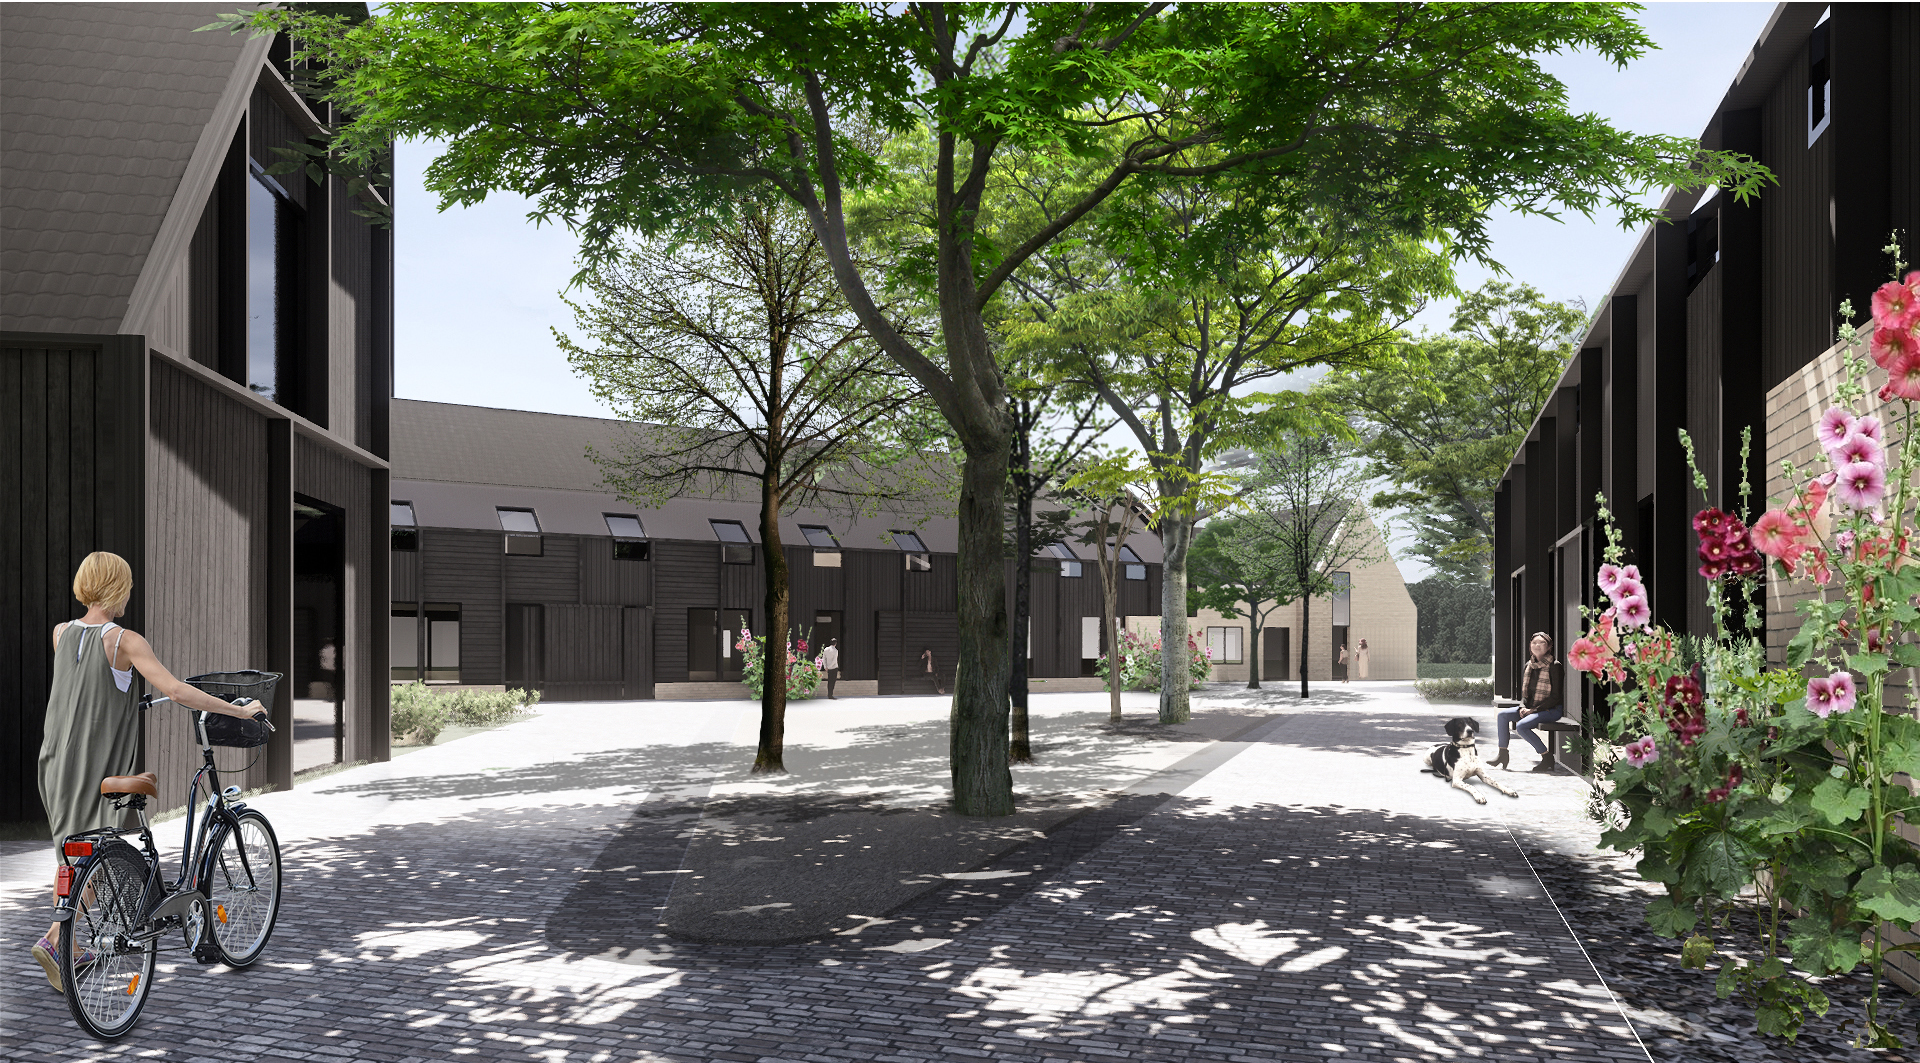 TUUNEN TEXEL - Den Burgh, Netherlands3rd place invited competition